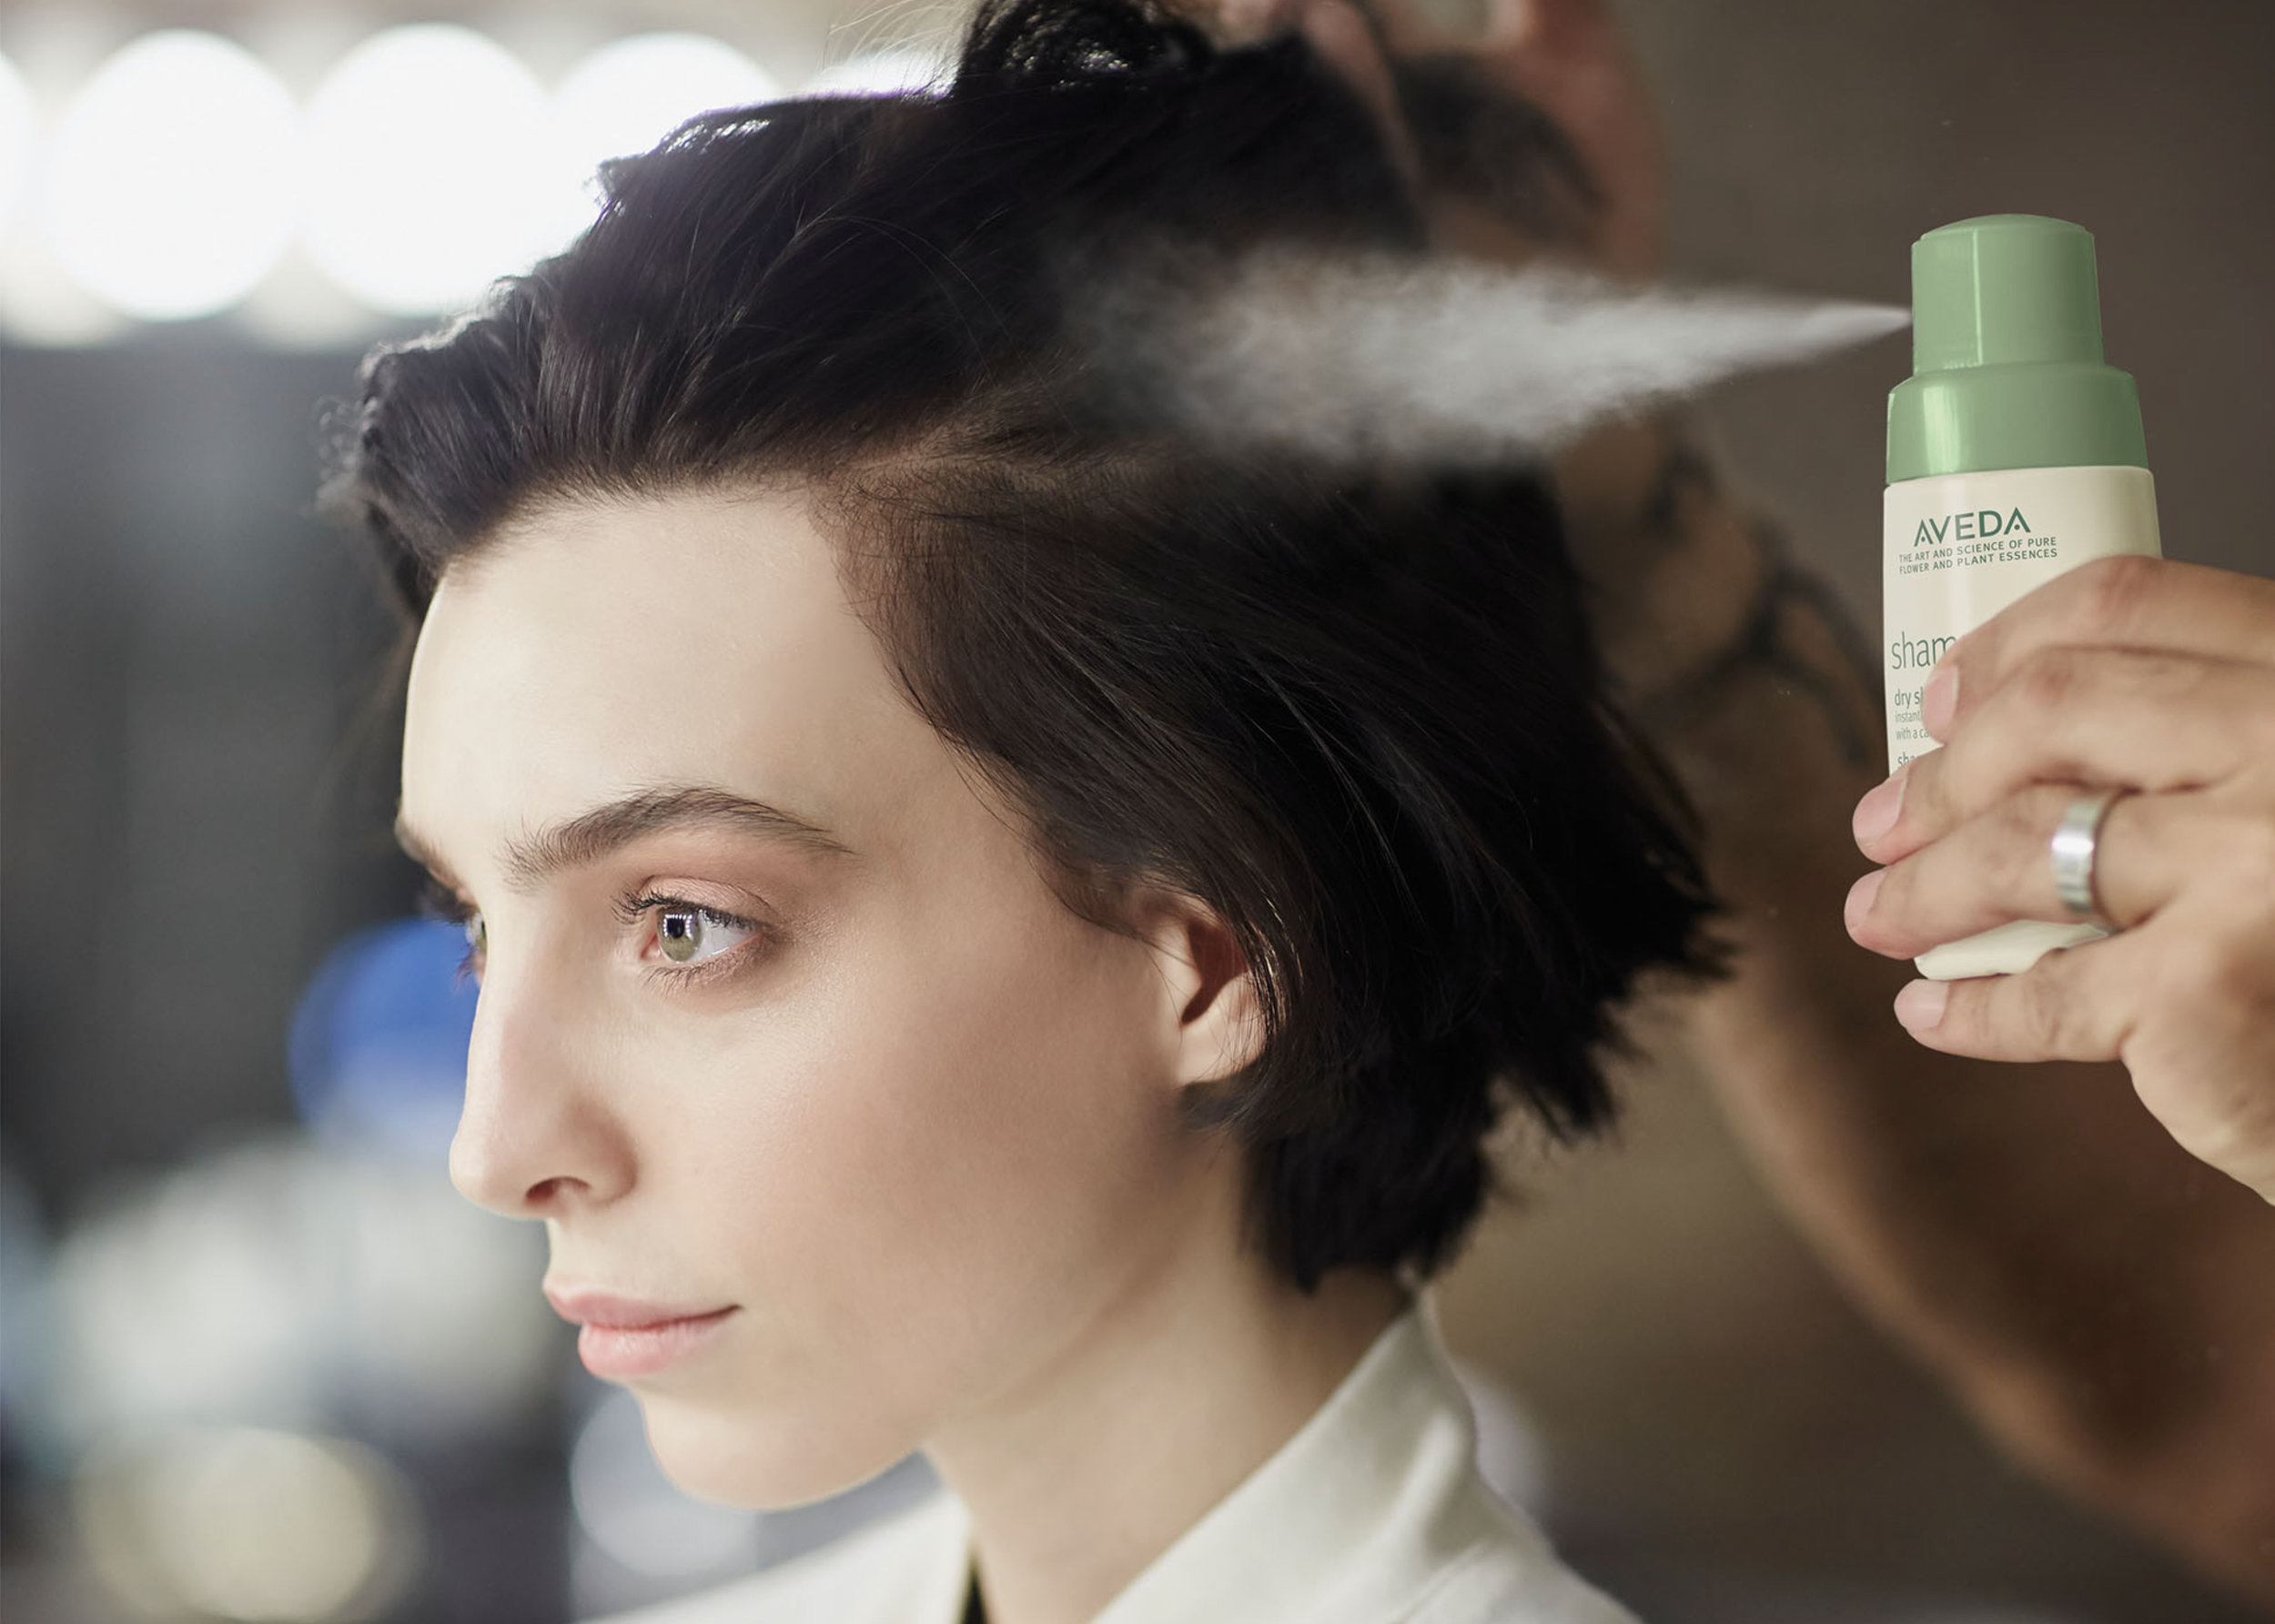 4) Make the most out of your hairstyles by incorporating Aveda's Shampure Dry Shampoo to refresh between shampoos. It not only gives great volume and absorbs excess oils but it imparts a fresh clean scent and creates the perfect texture for that second day up-style so you can focus more on getting your homework done or grading those papers.